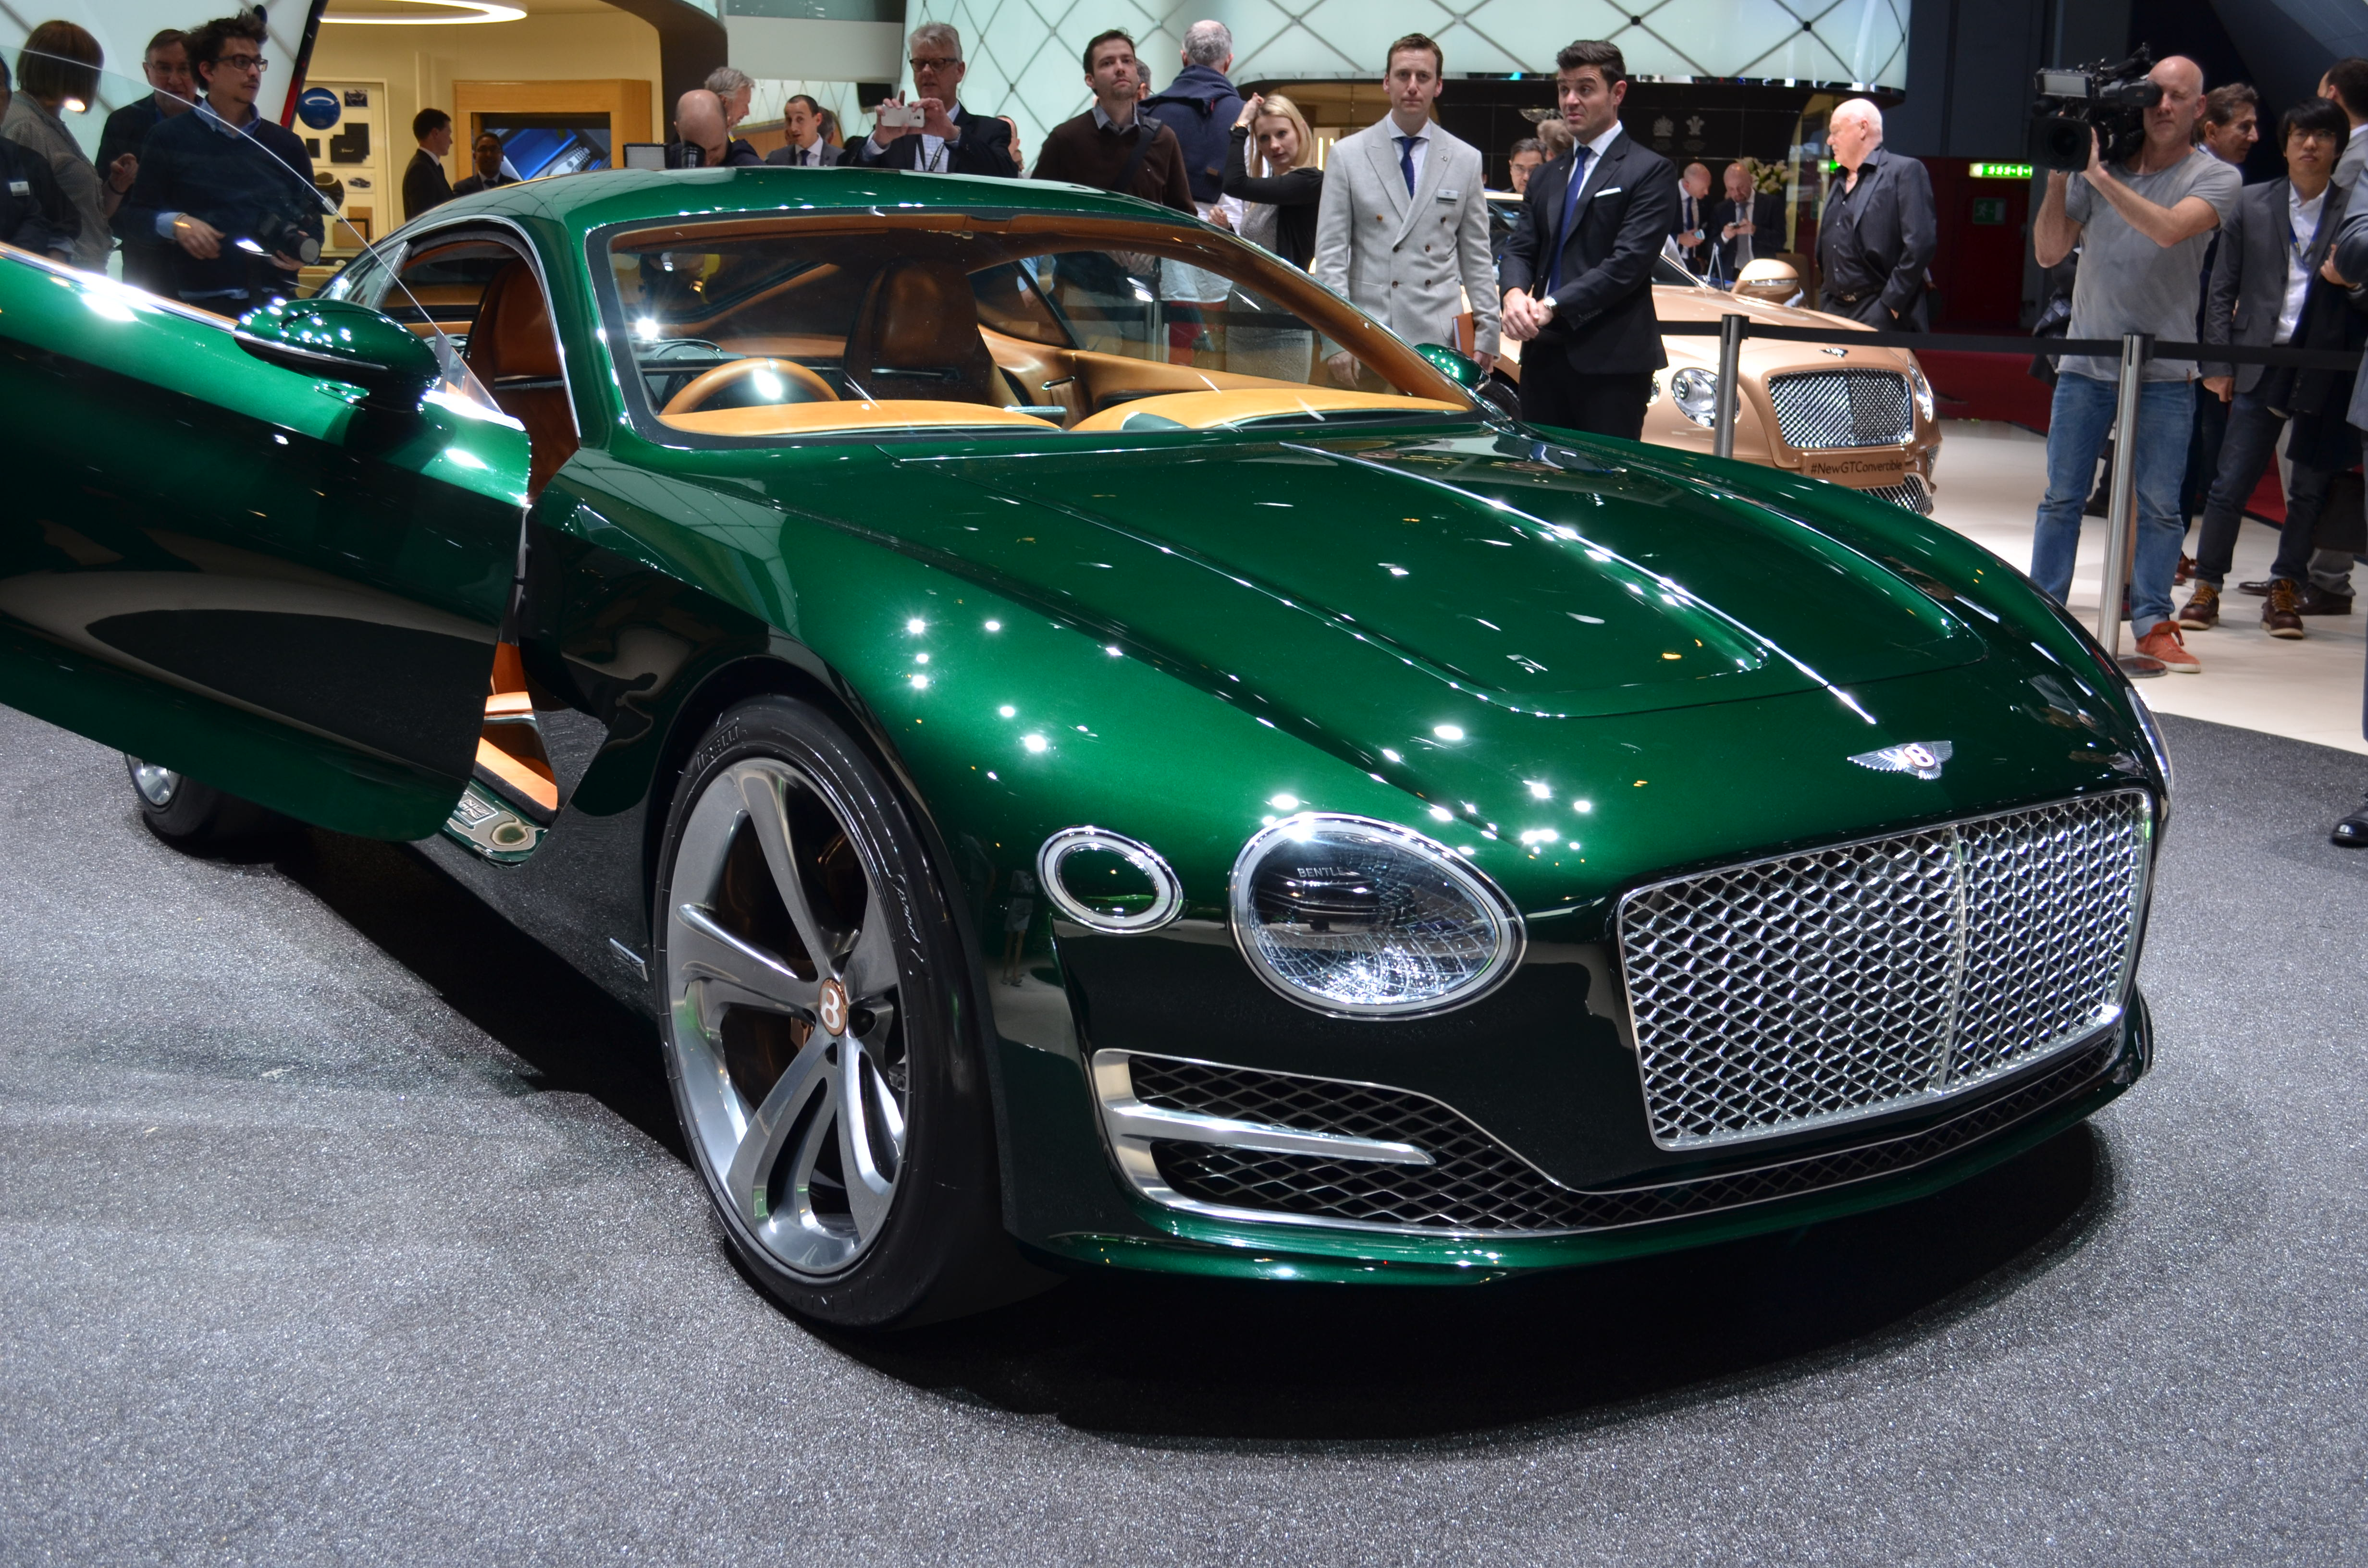 Bentley Previews Future Sports Car With Stunning New